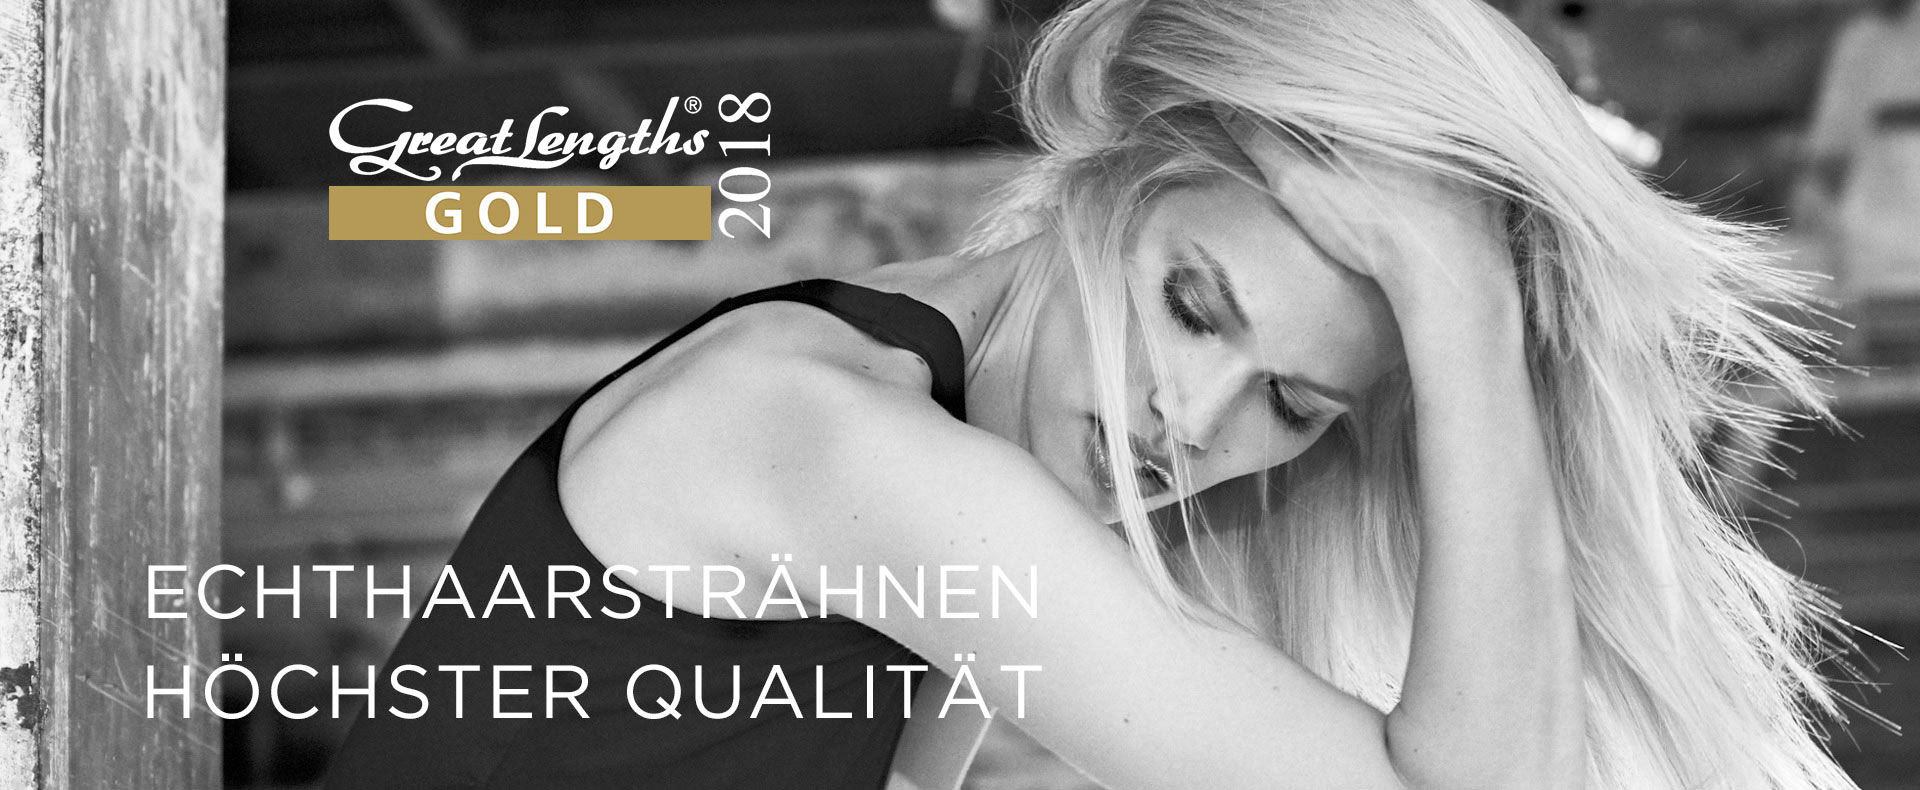 Great Lengths Stuttgart, Esslingen, Altbach - Great Lengths Extensions | Friseur Hair & Style